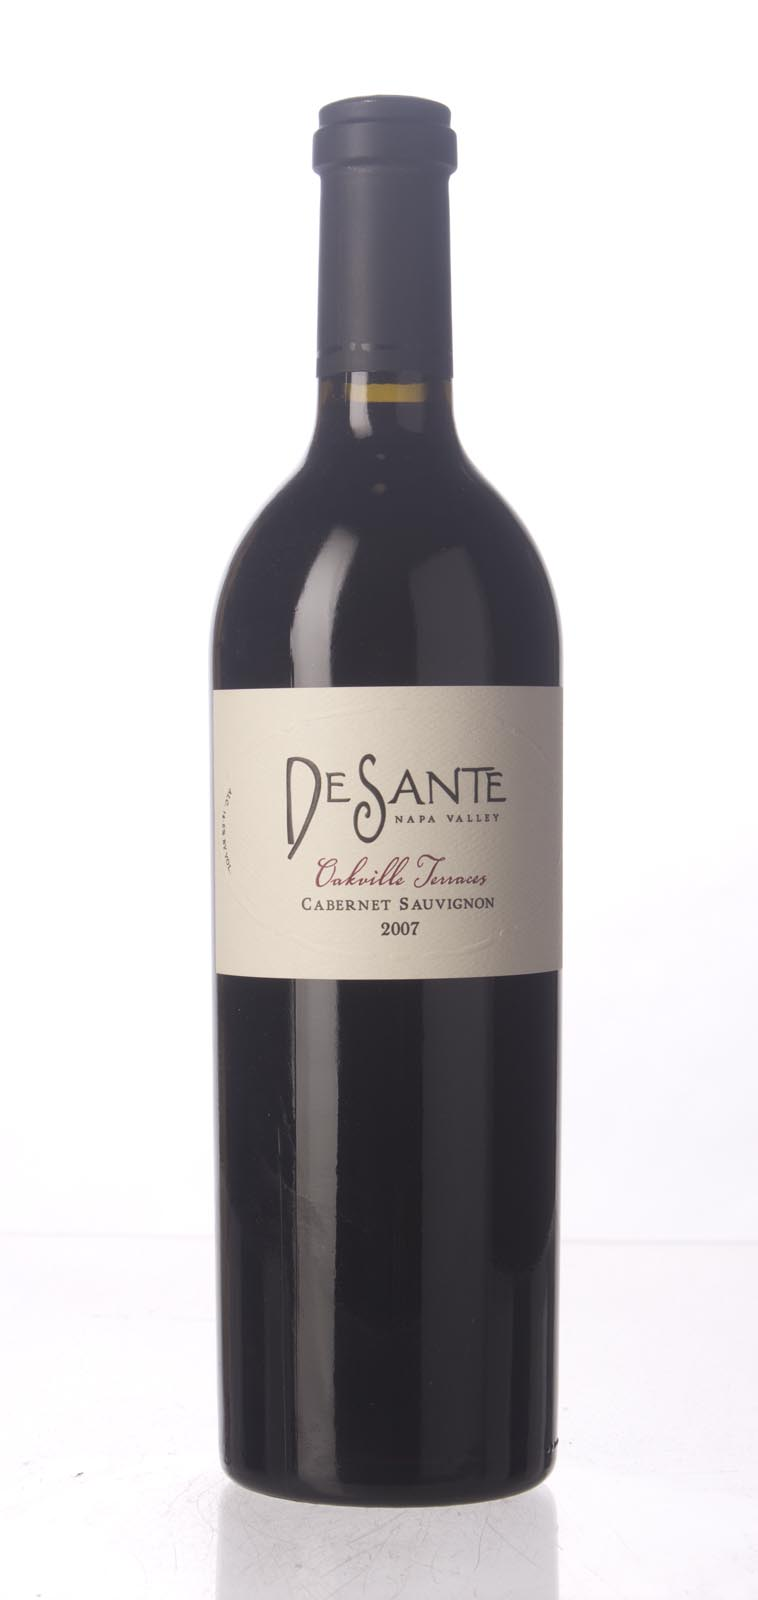 DeSante Cabernet Sauvignon Oakville Terraces 2007, 750mL () from The BPW - Merchants of rare and fine wines.